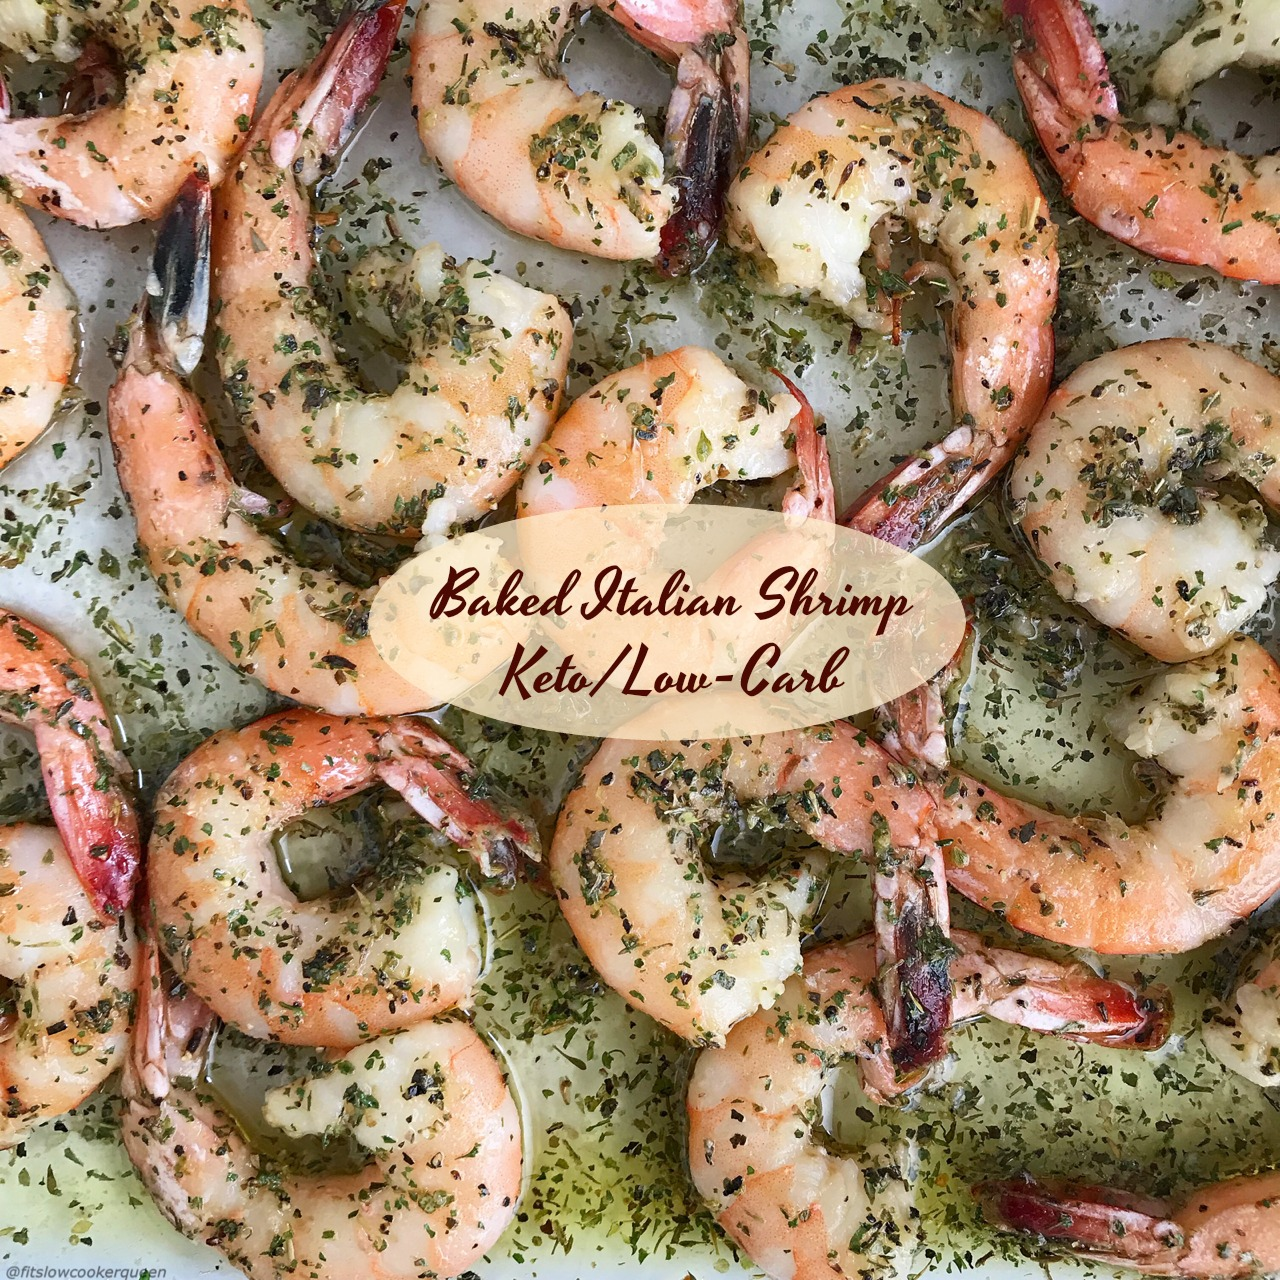 These baked Italian shrimp are low-carb, keto, paleo, whole30 and easy to make. Using a homemade Italian salad dressing mix, this cooks in less than 20 min!